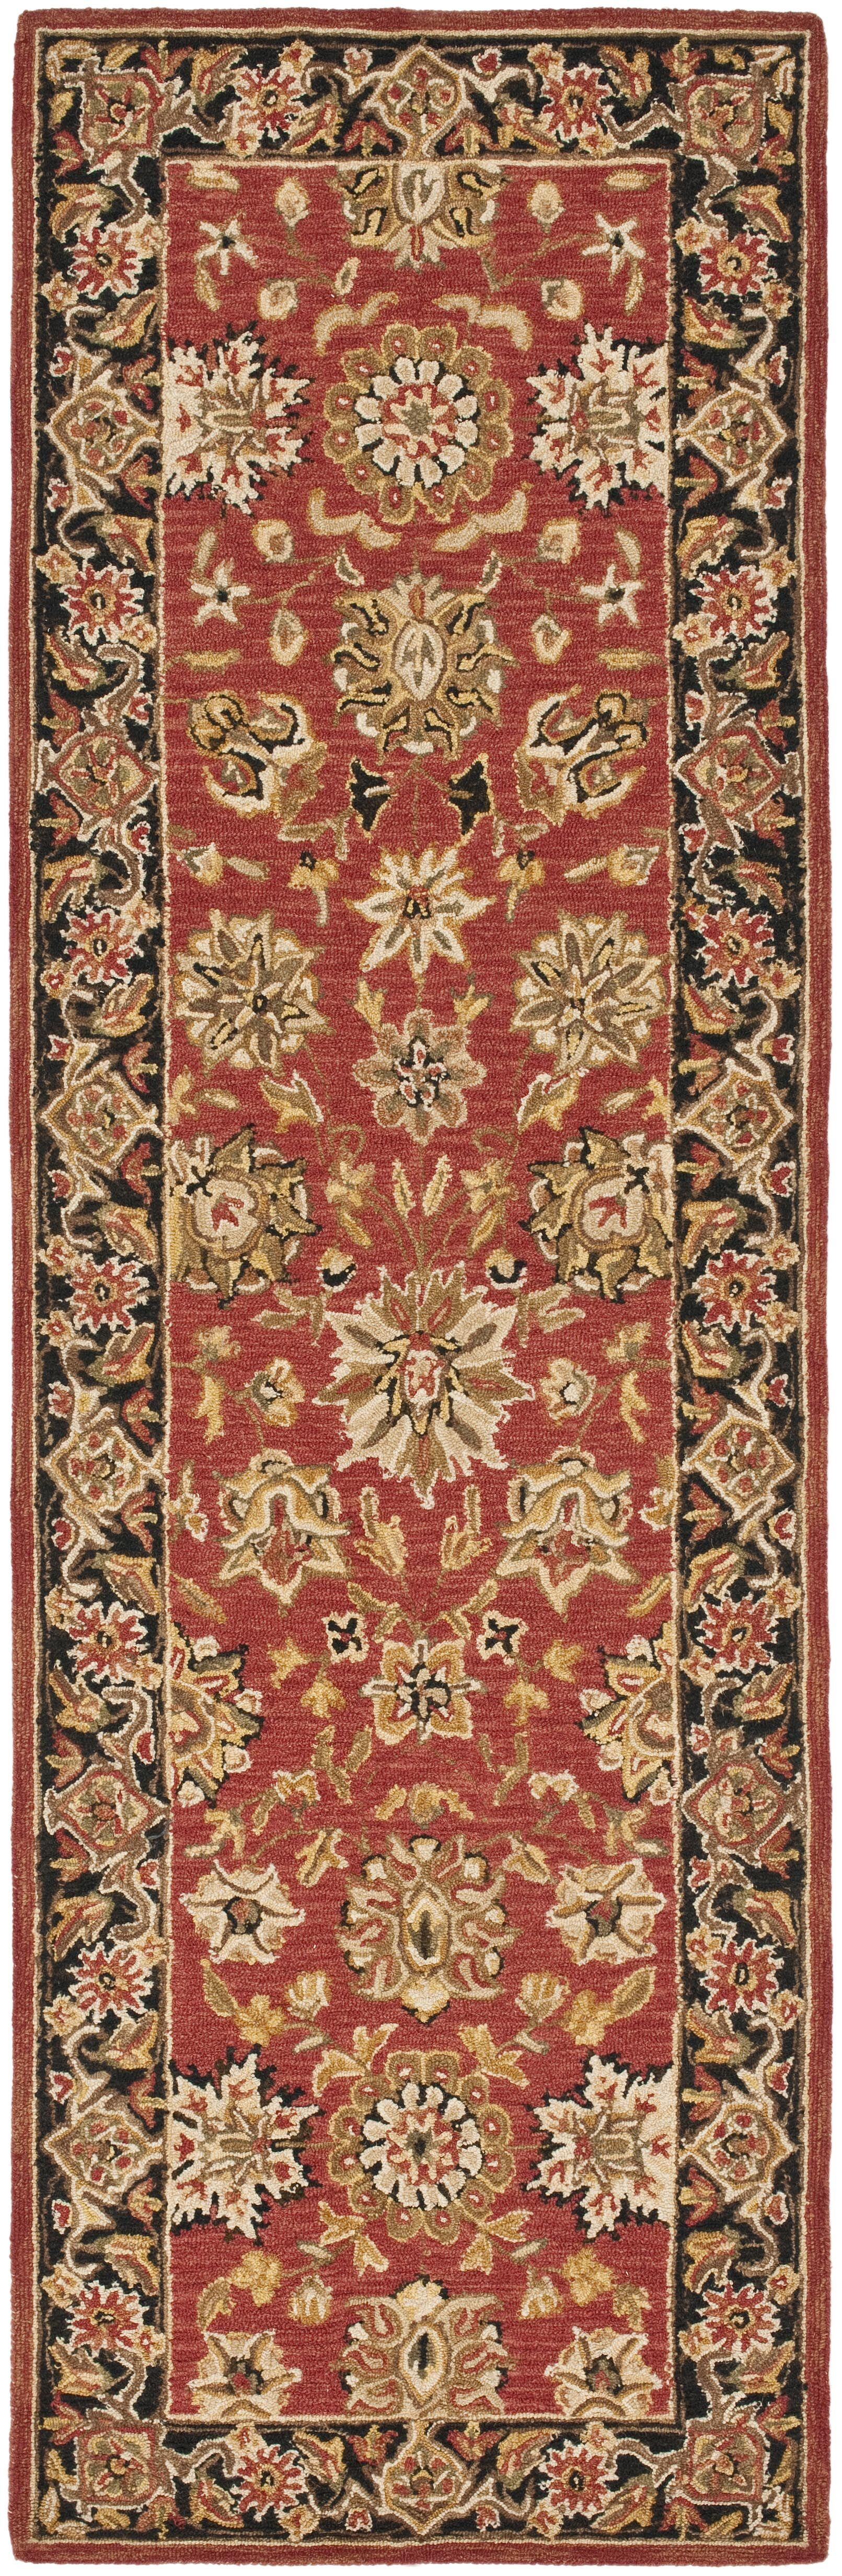 Weaver Red Rug Rug Size: Rectangle 6' x 9'